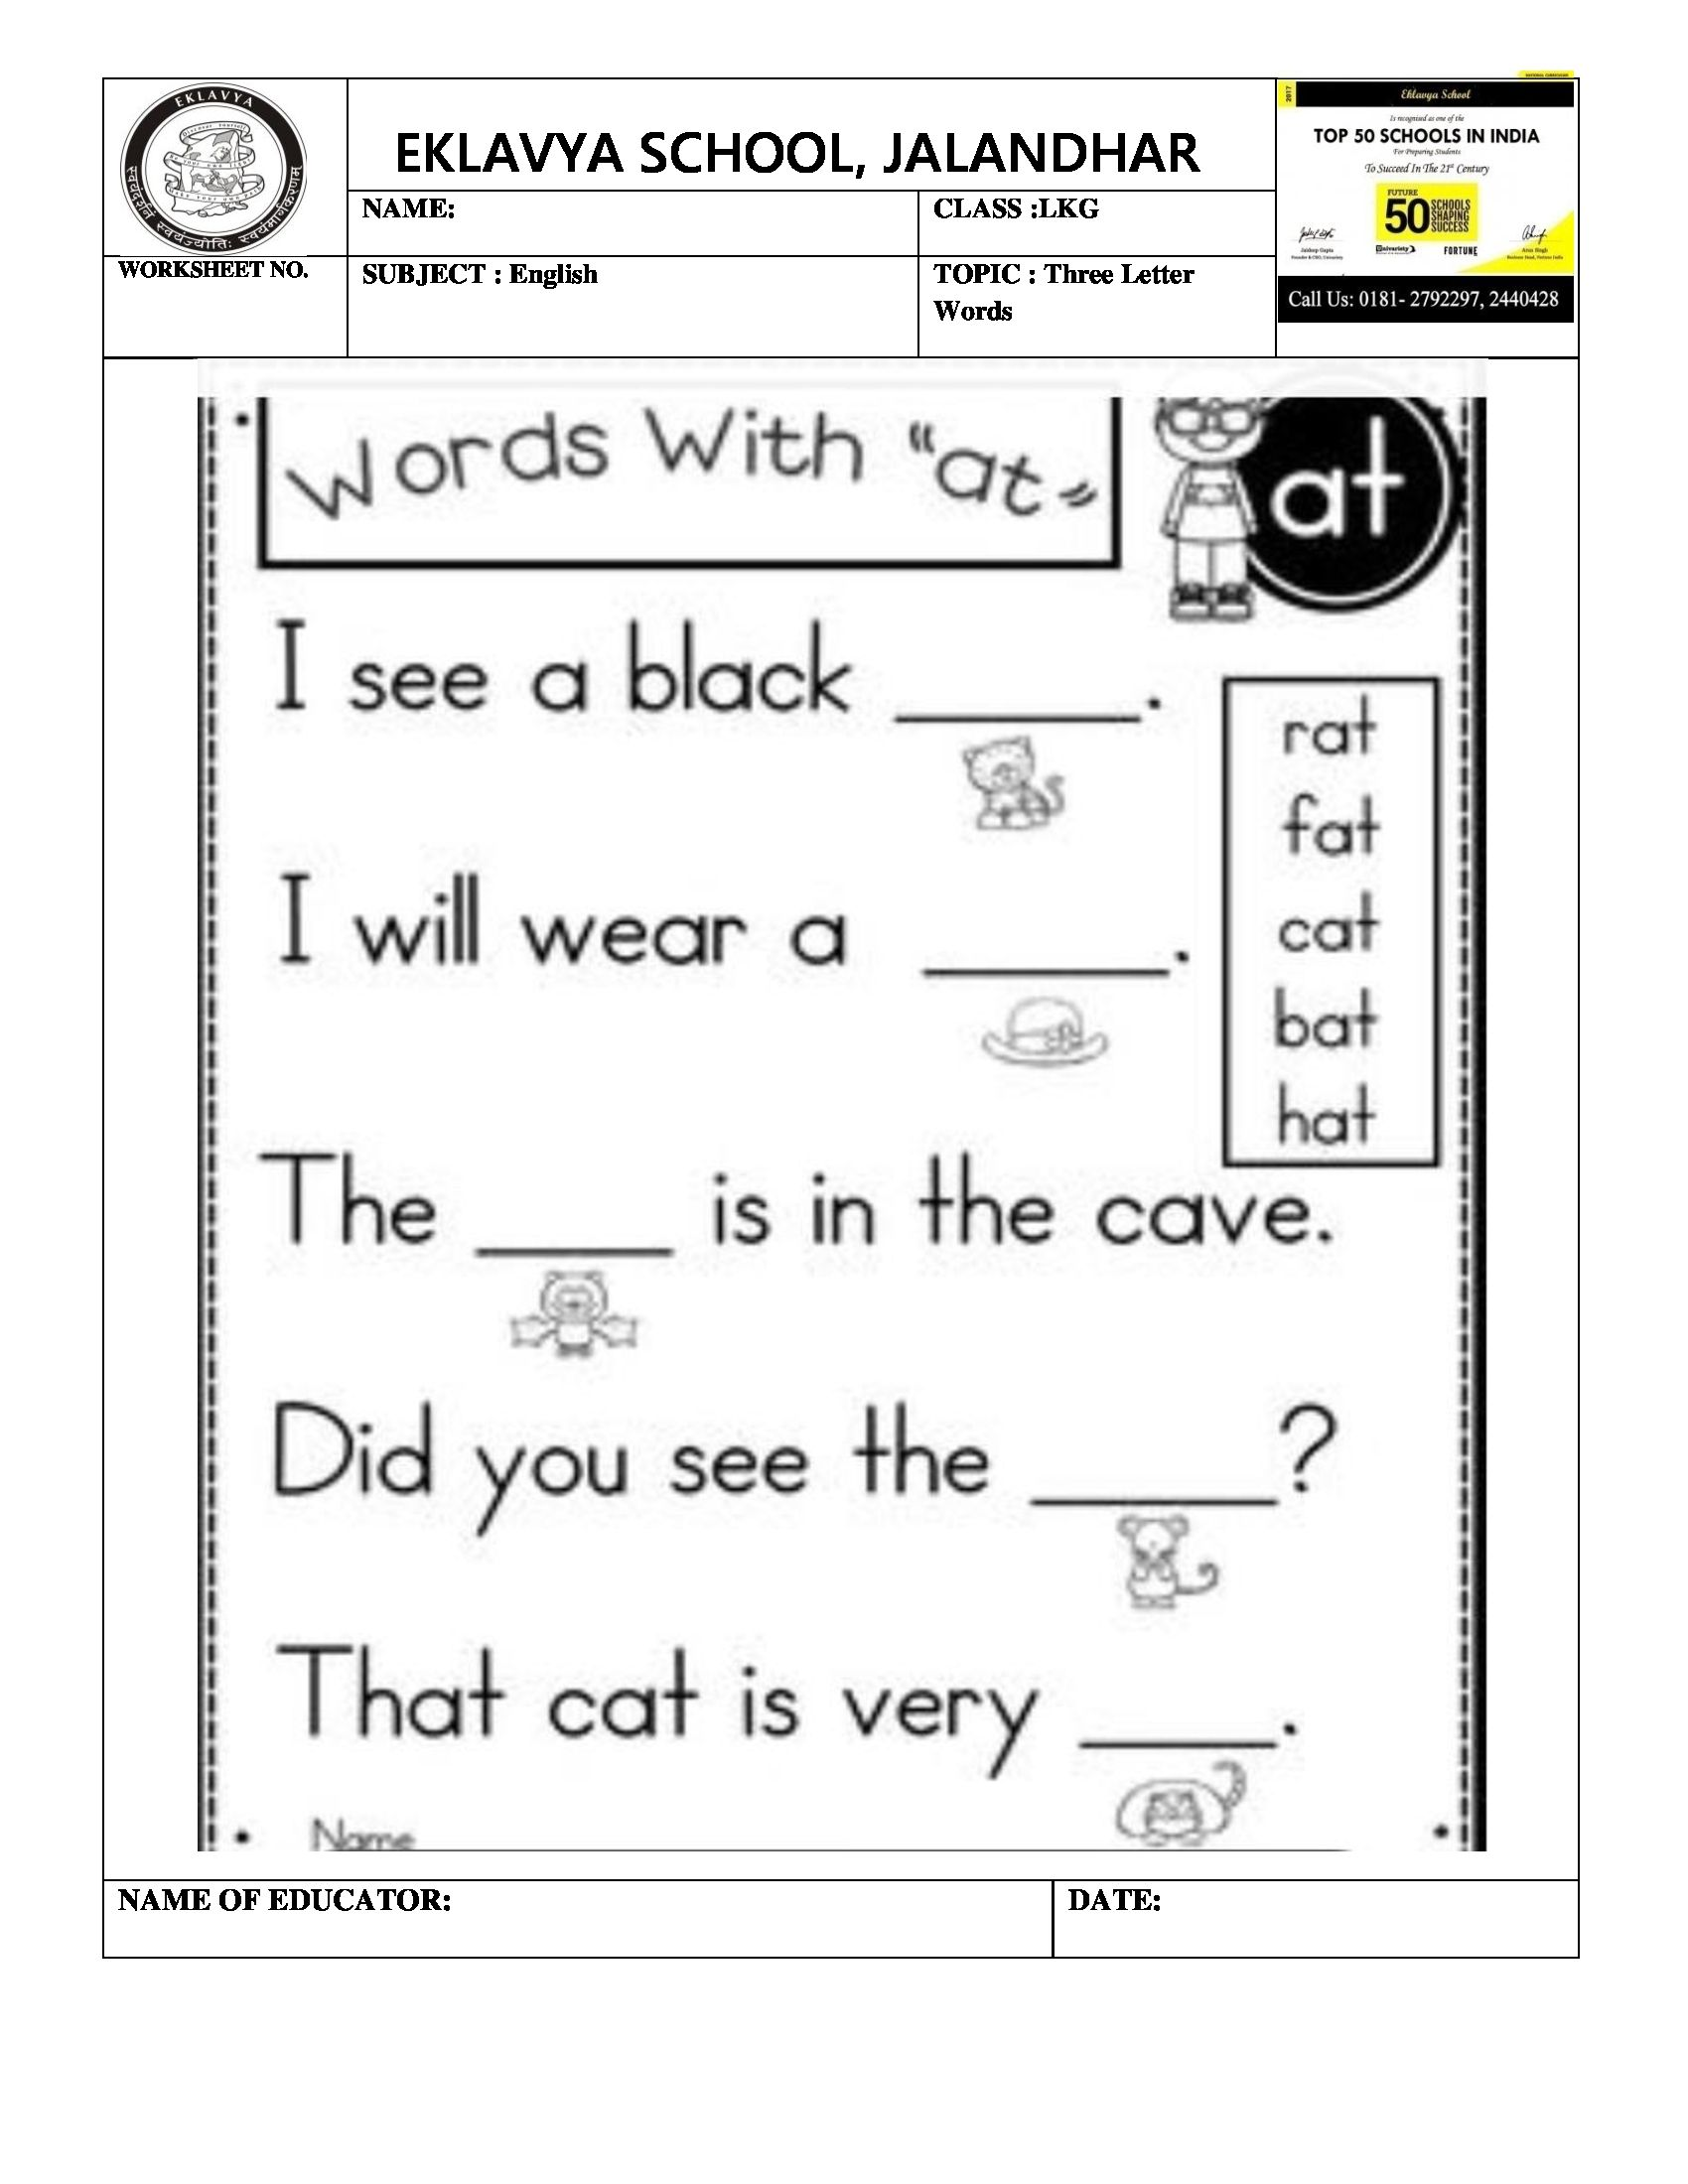 Three Letter Words Worksheet | Pre- Primary Worksheets | Blends ...